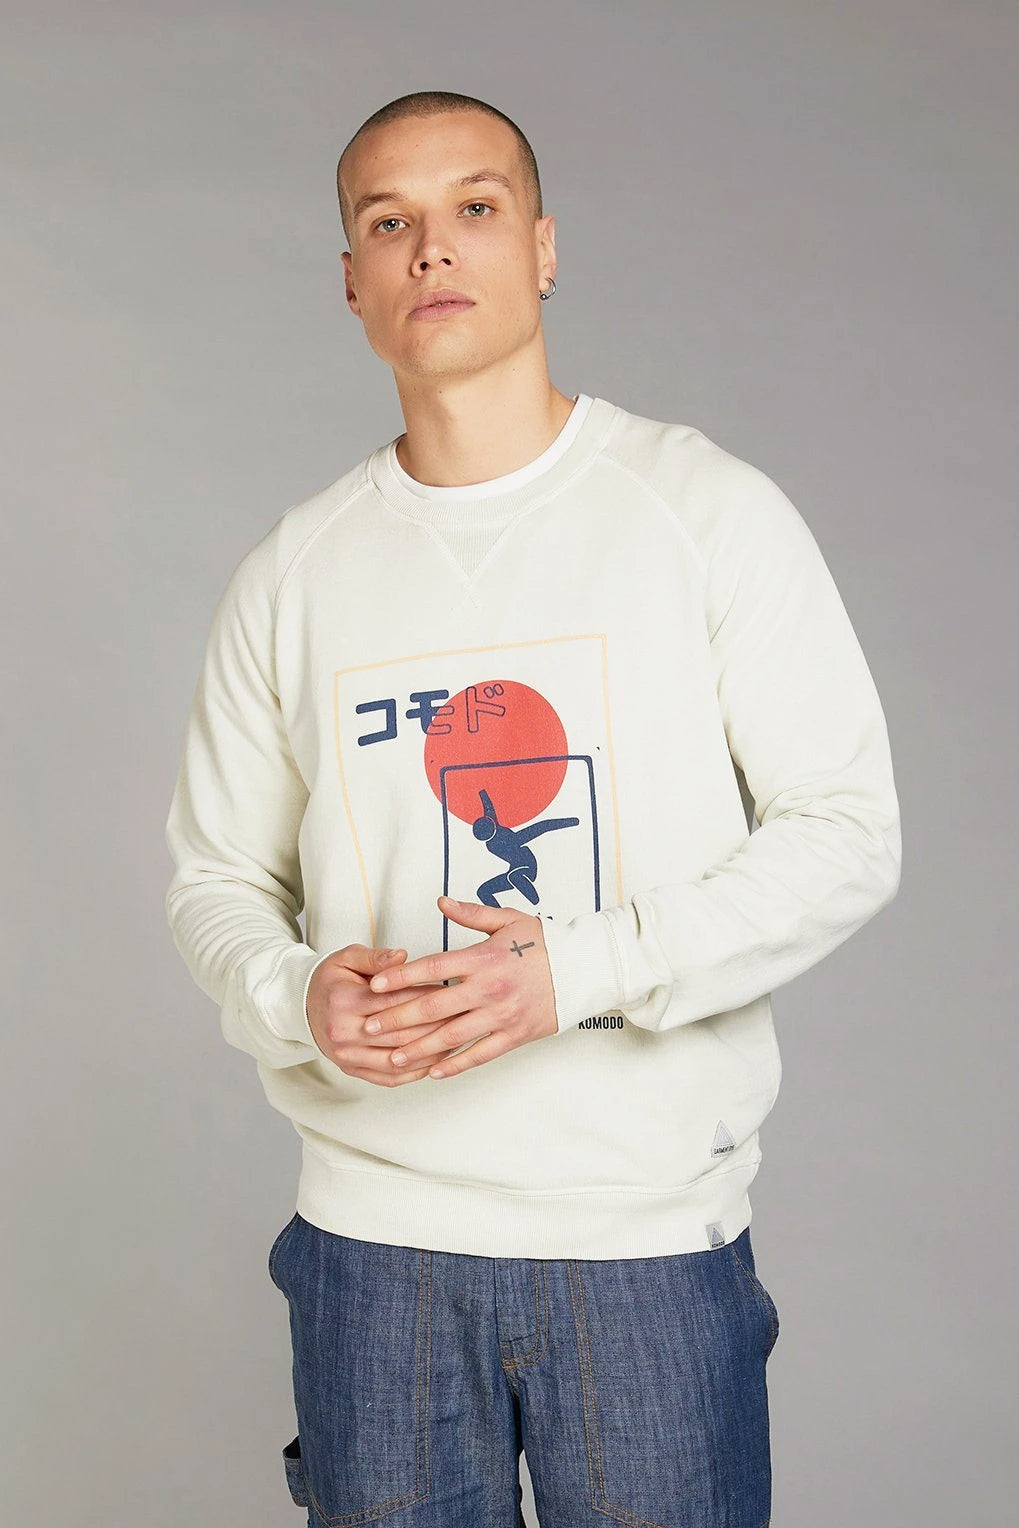 ANTON SK8 TEAM JAPAN Organic Cotton Sweat - Komodo Fashion